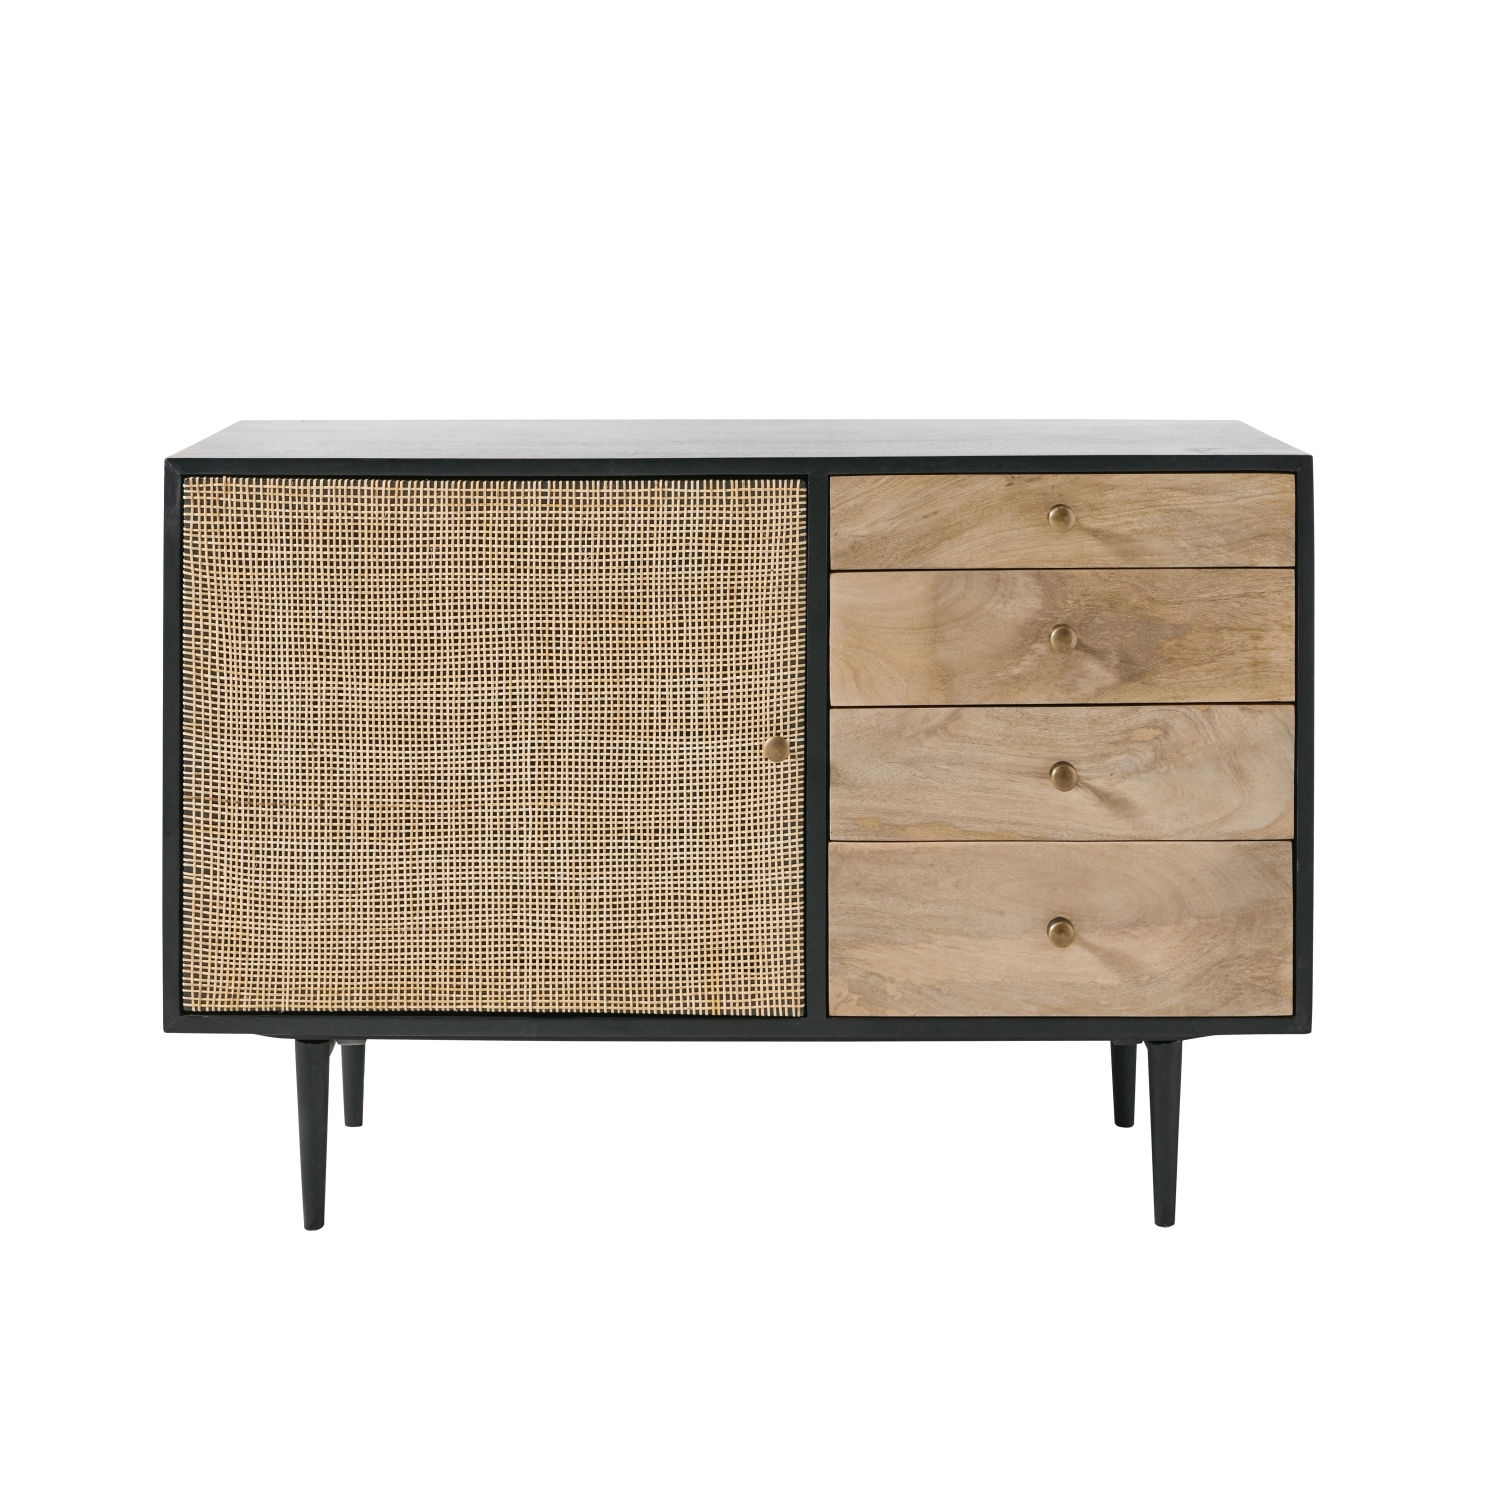 Solid Mango Wood And Acacia 1-Door 4-Drawer Sideboard | Maisons Du Monde with regard to Acacia Wood 4-Door Sideboards (Image 25 of 30)